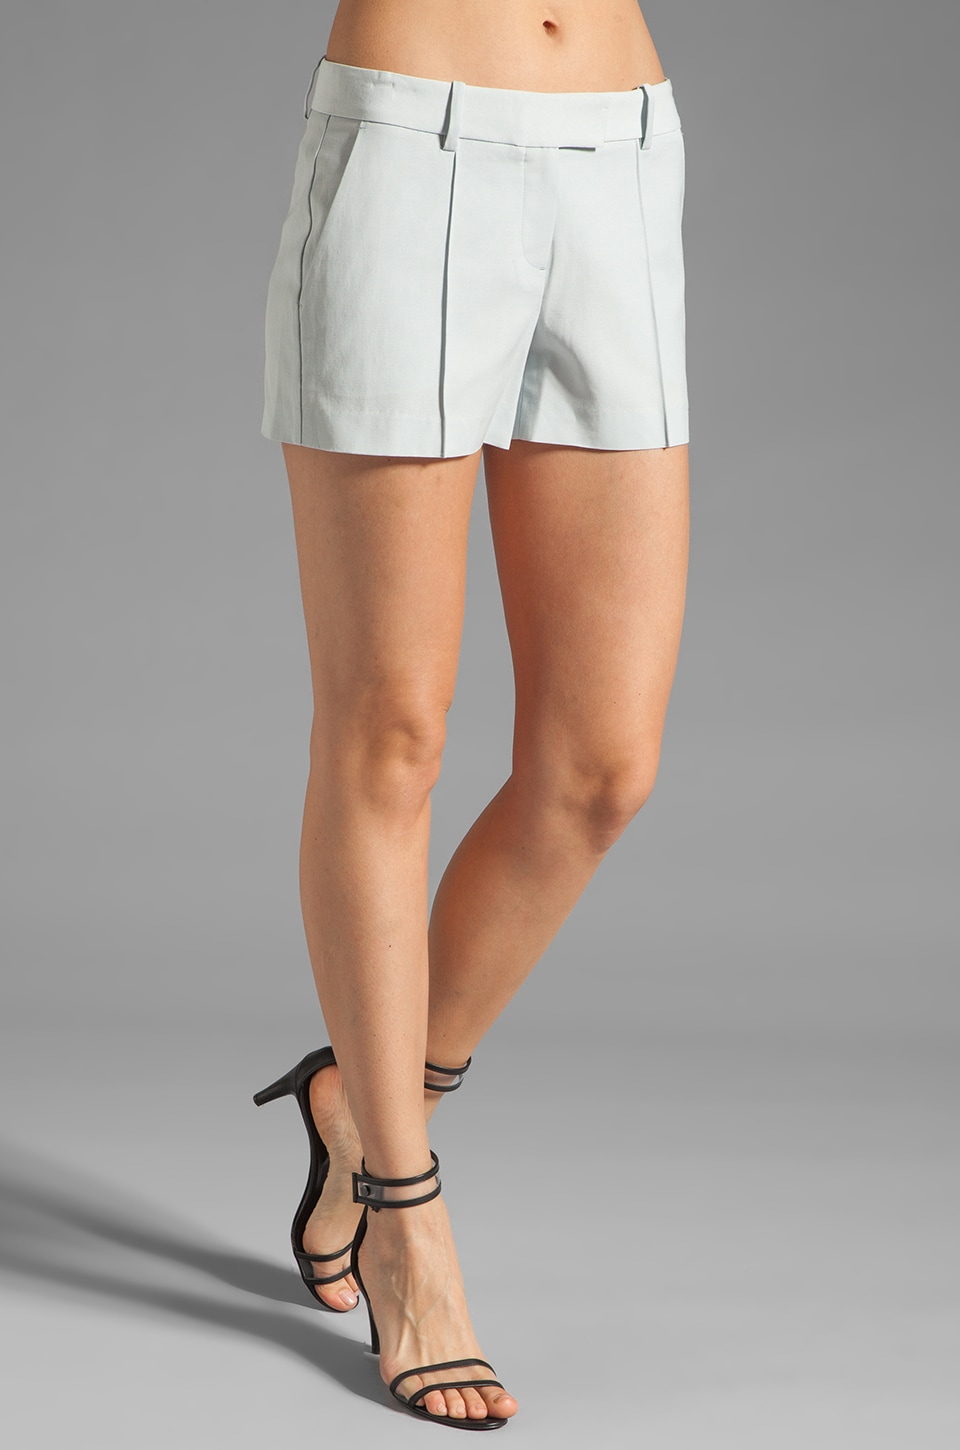 Theory Jubilee POE Shorts in Grey Sky